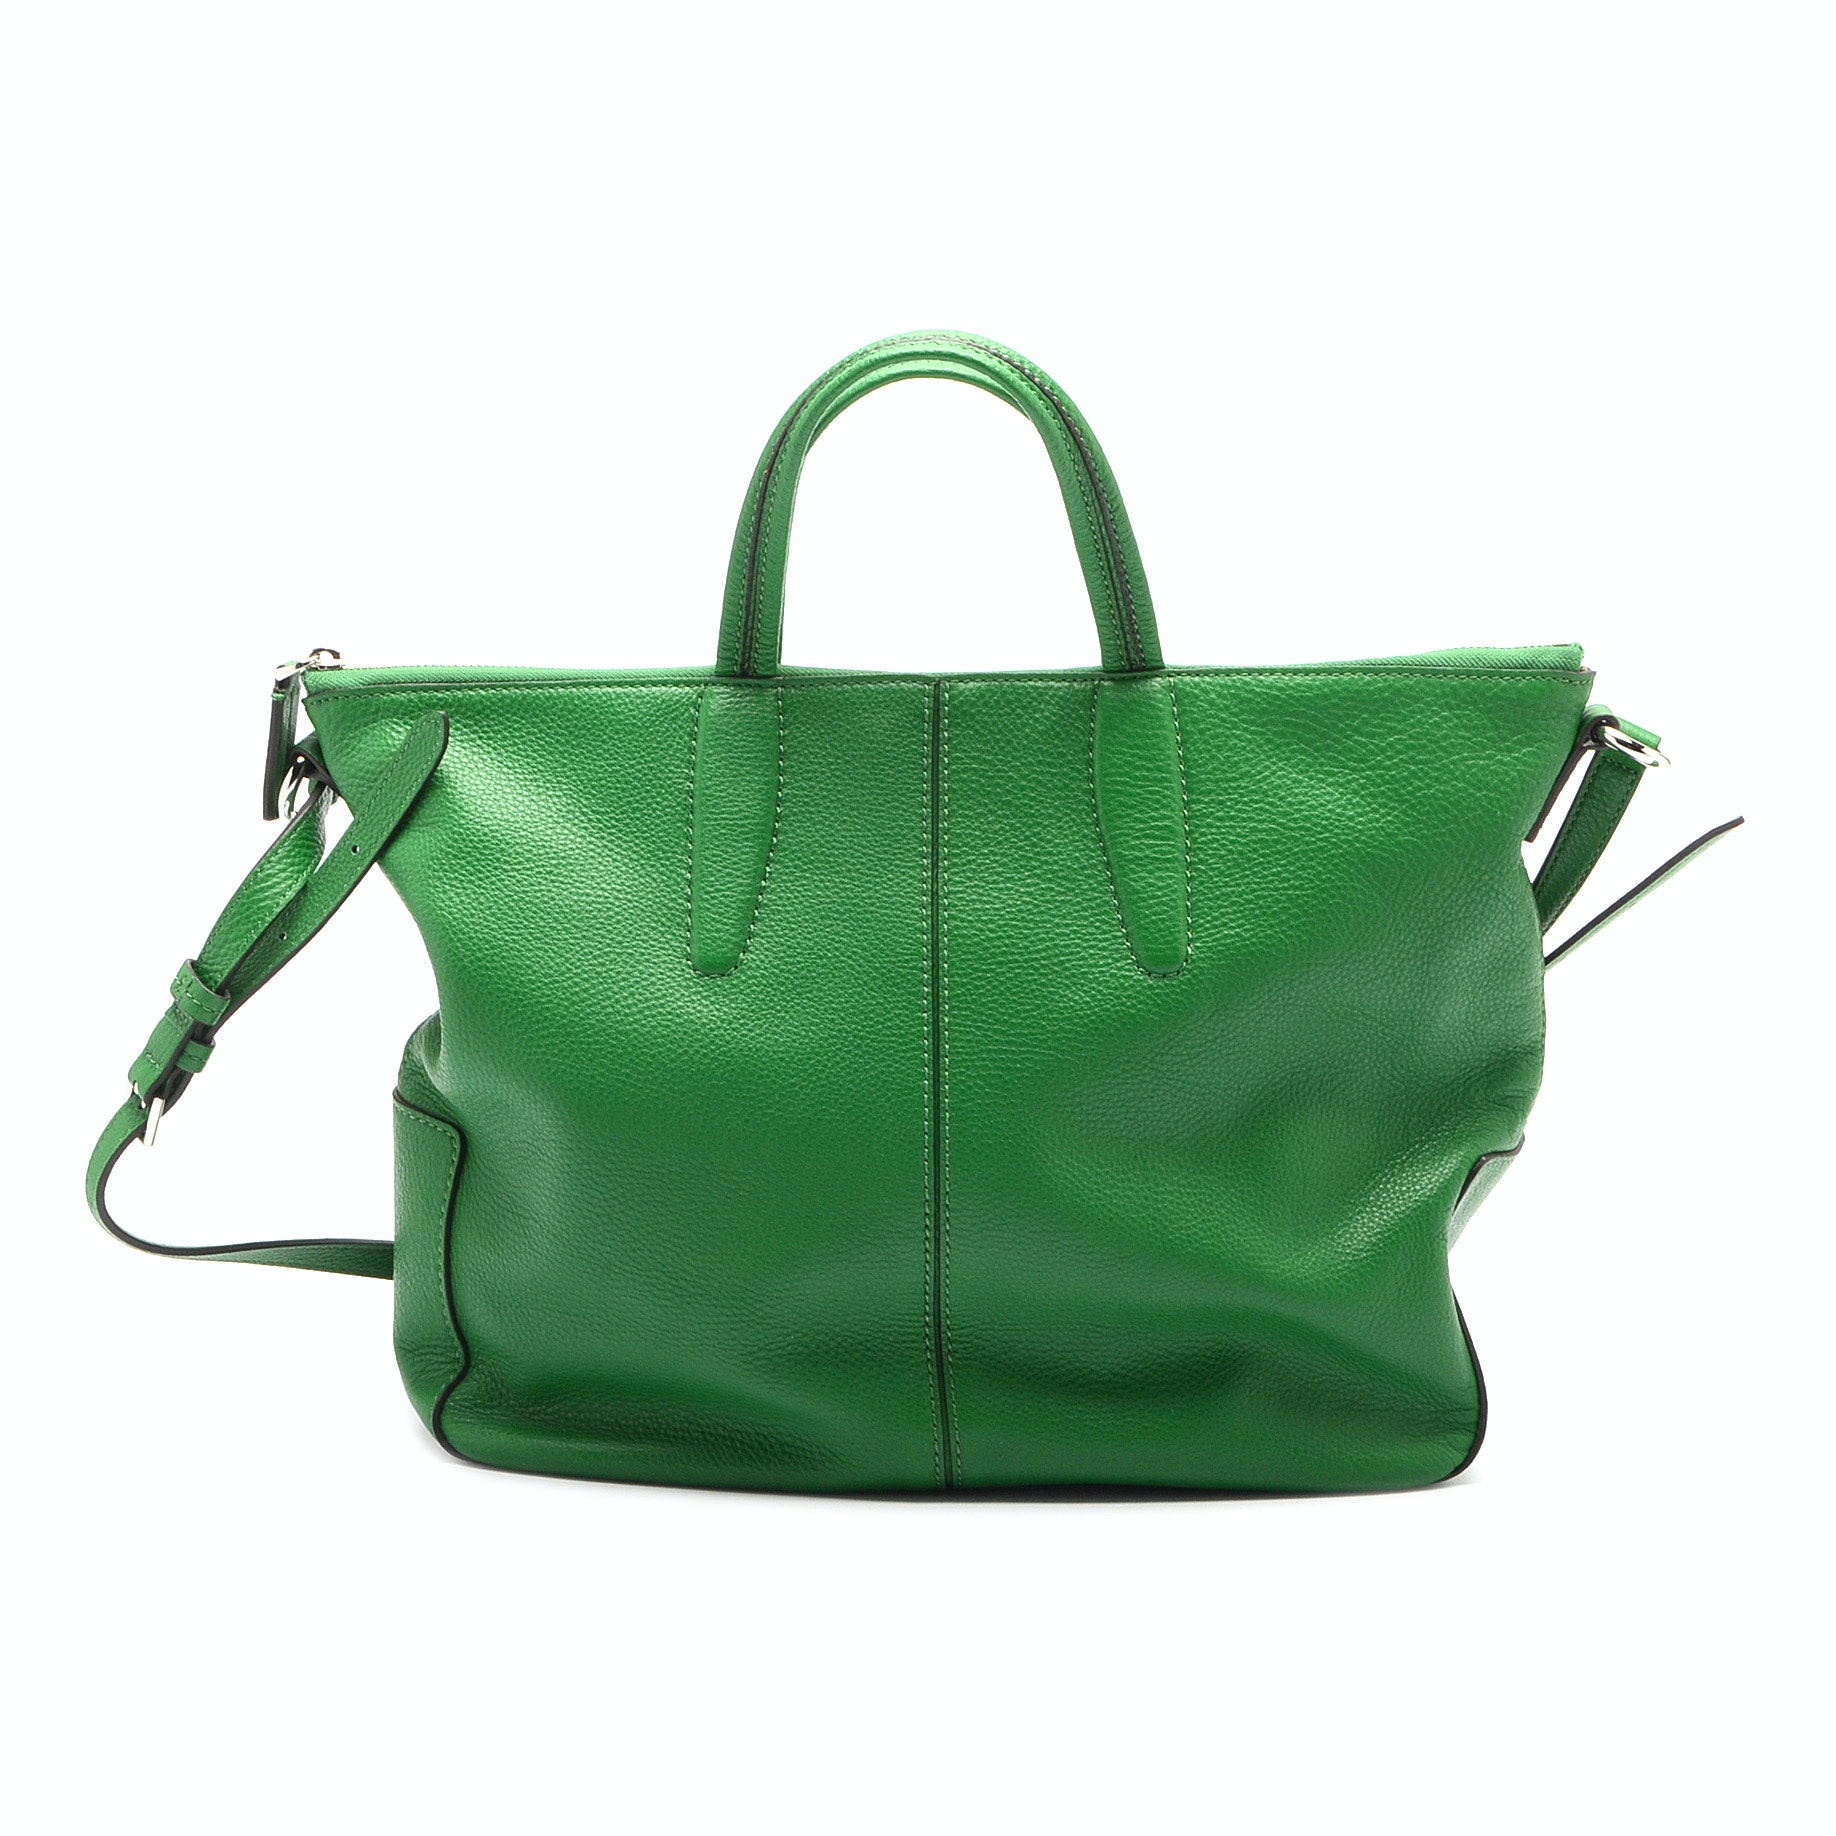 Tumi Green Leather Tote Bag